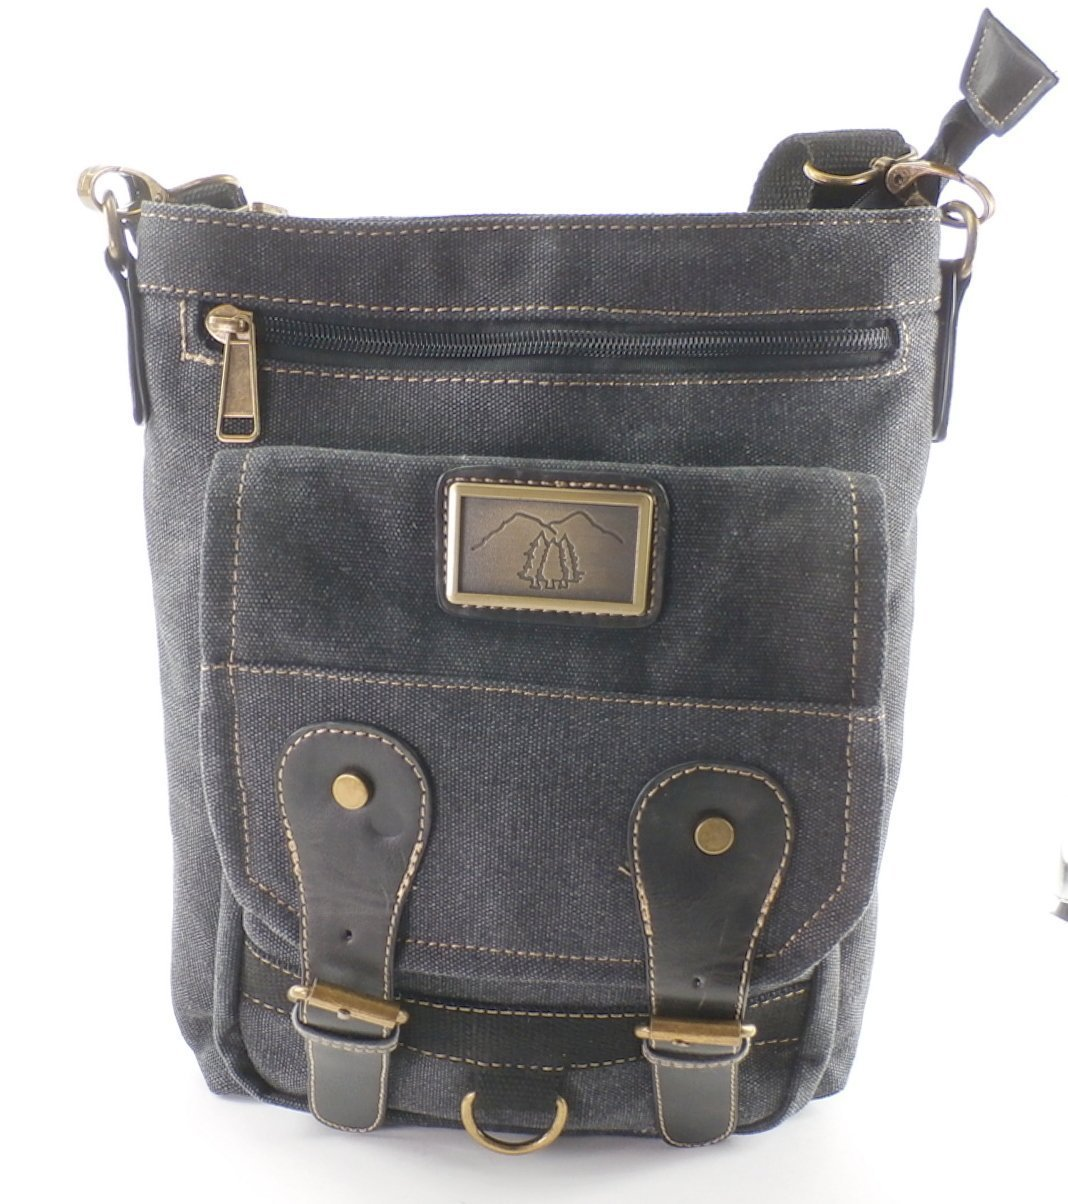 The Windom by Camille Conceals - Black Canvas Cross Body Concealed Carry Purse/Bag - Revolver or Compact Semi Automatic